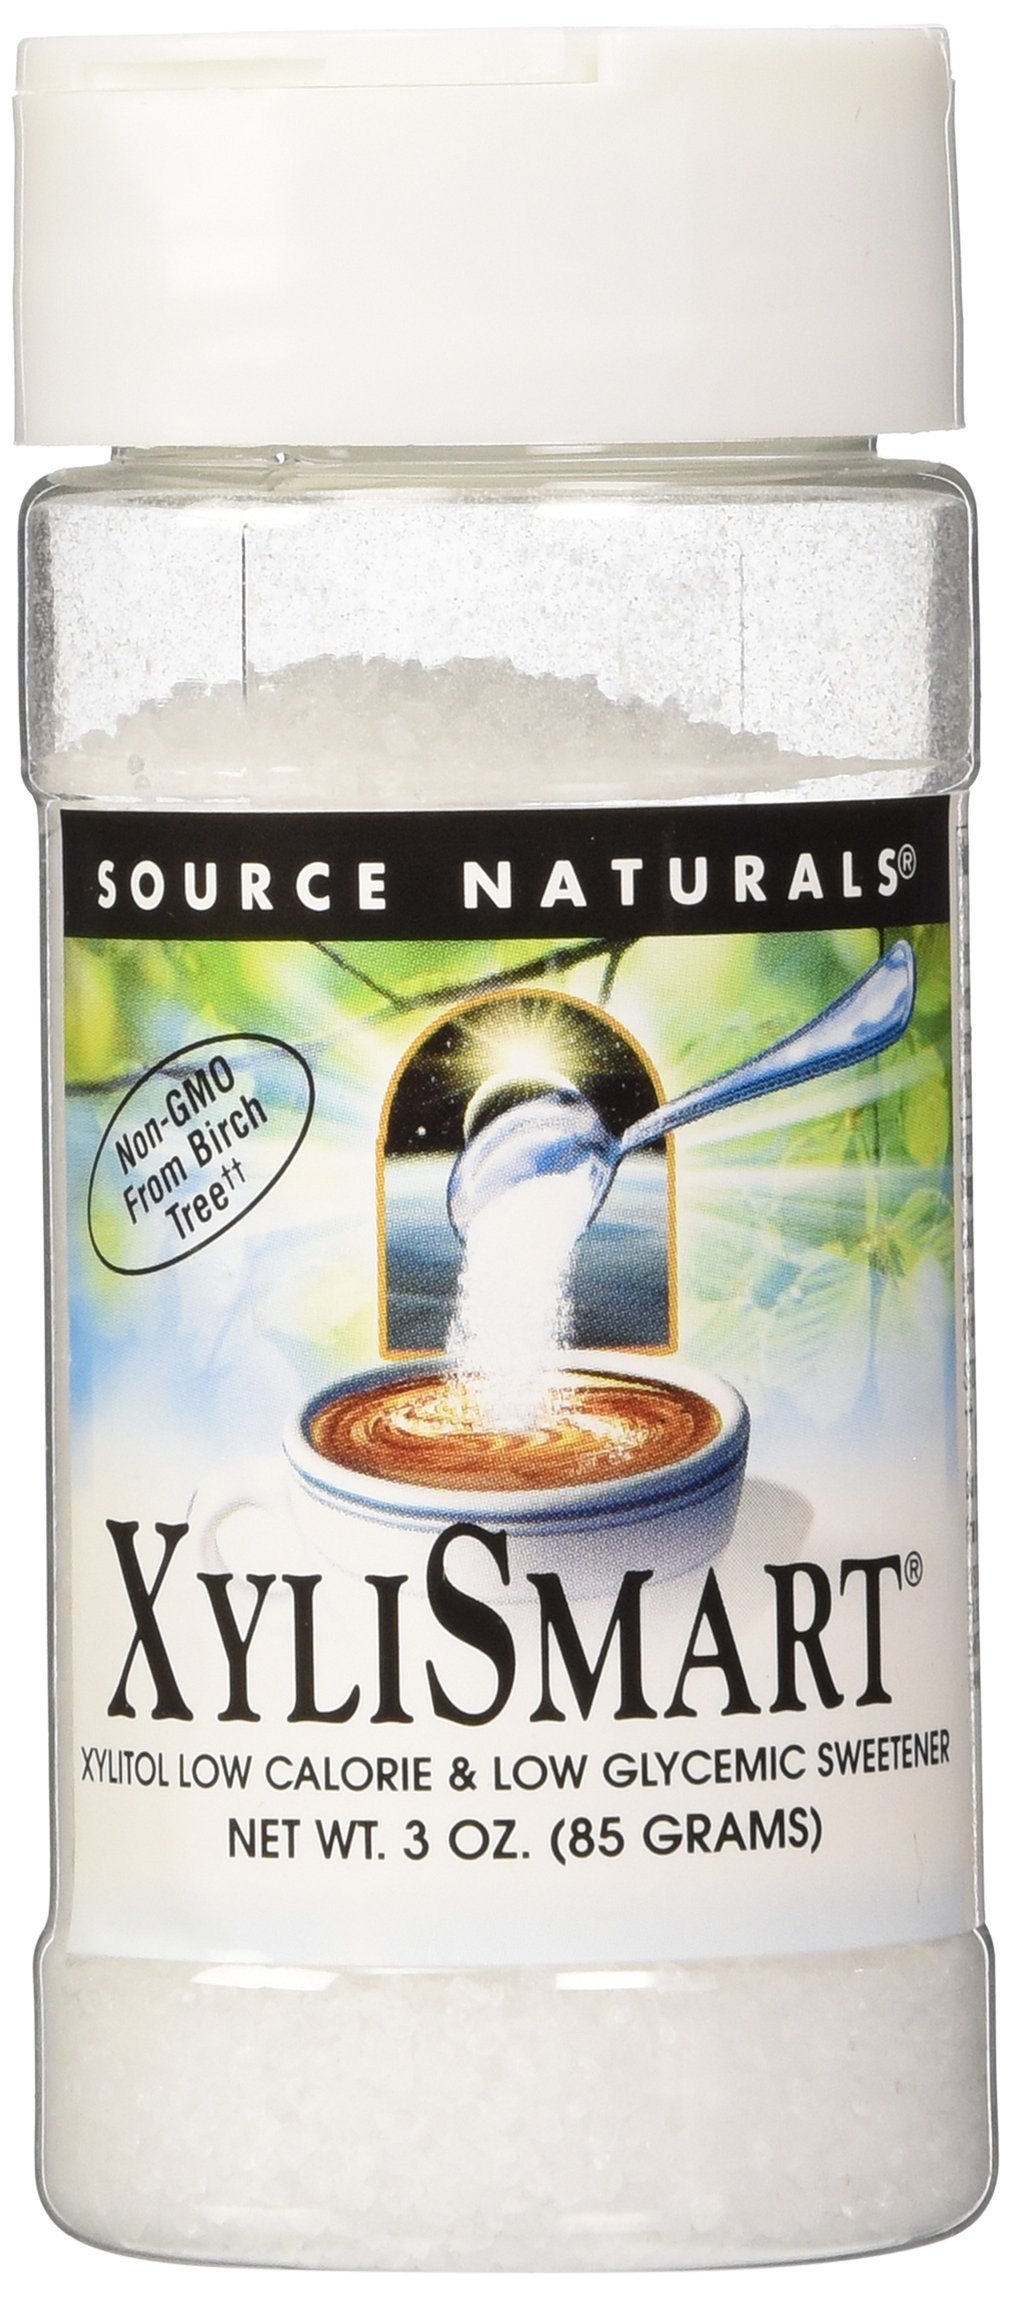 Source Naturals XyliSmart, Xylitol Low-Calorie & Low-Glycemic Sweetener, 3 Oz (Pack of 2) by Source Naturals